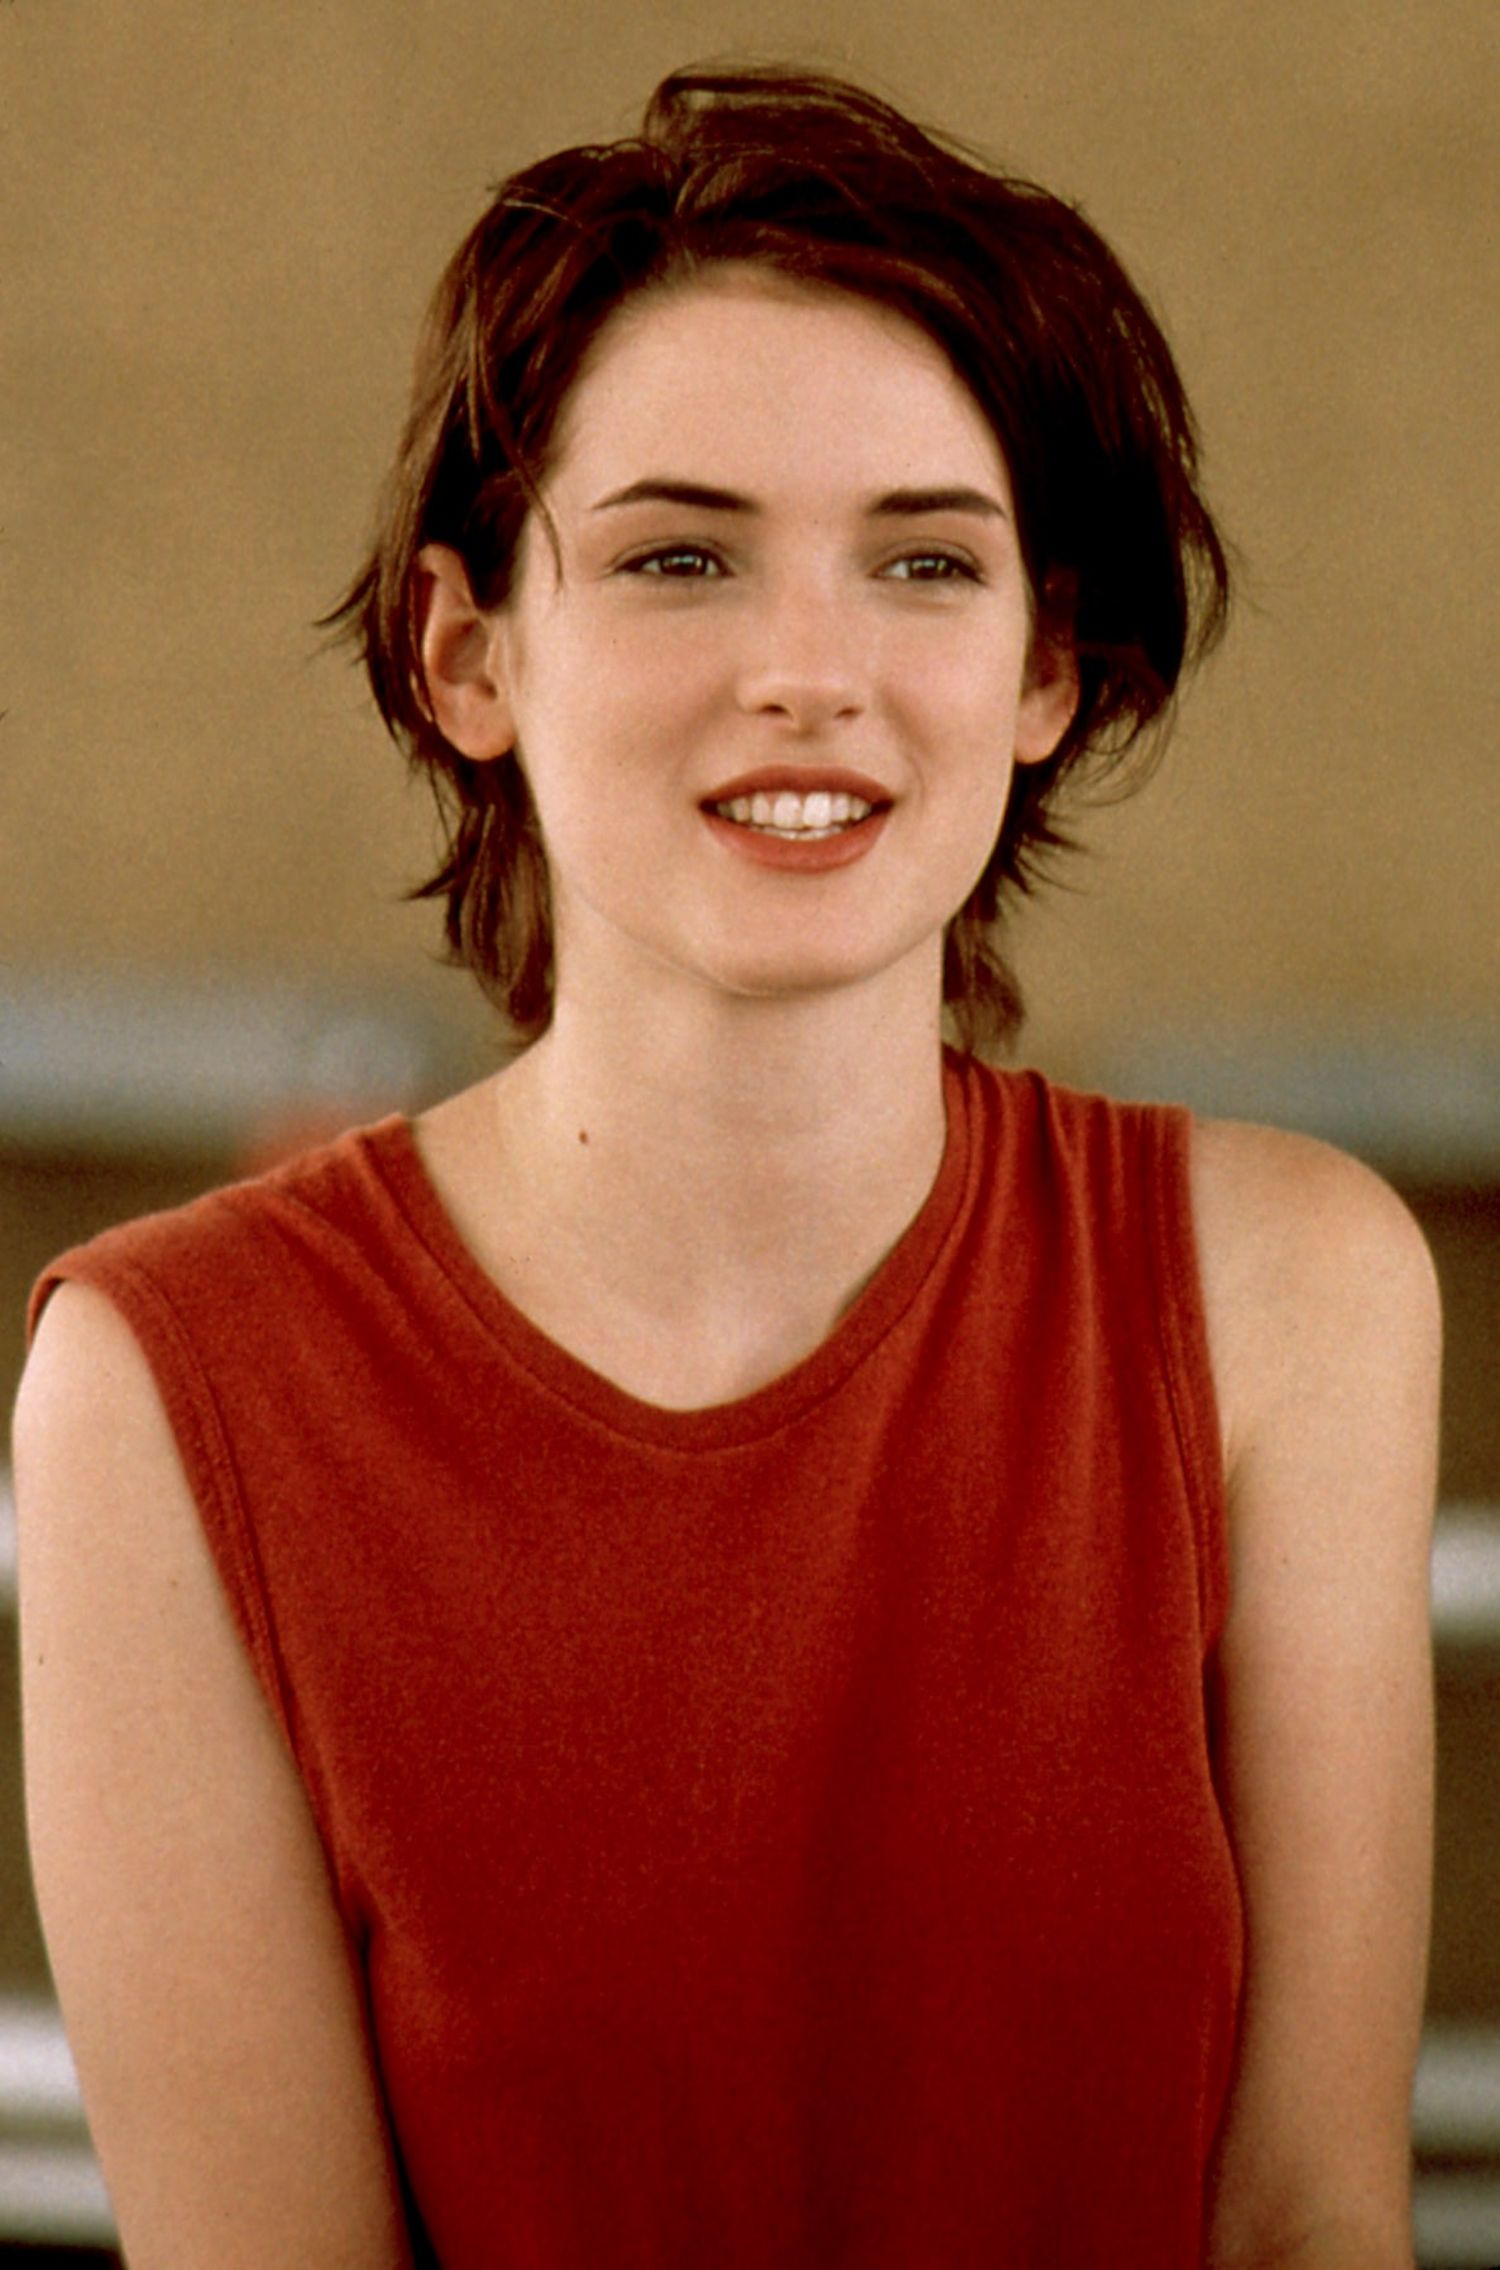 Flashback: Winona Ryder antes de Stranger Things